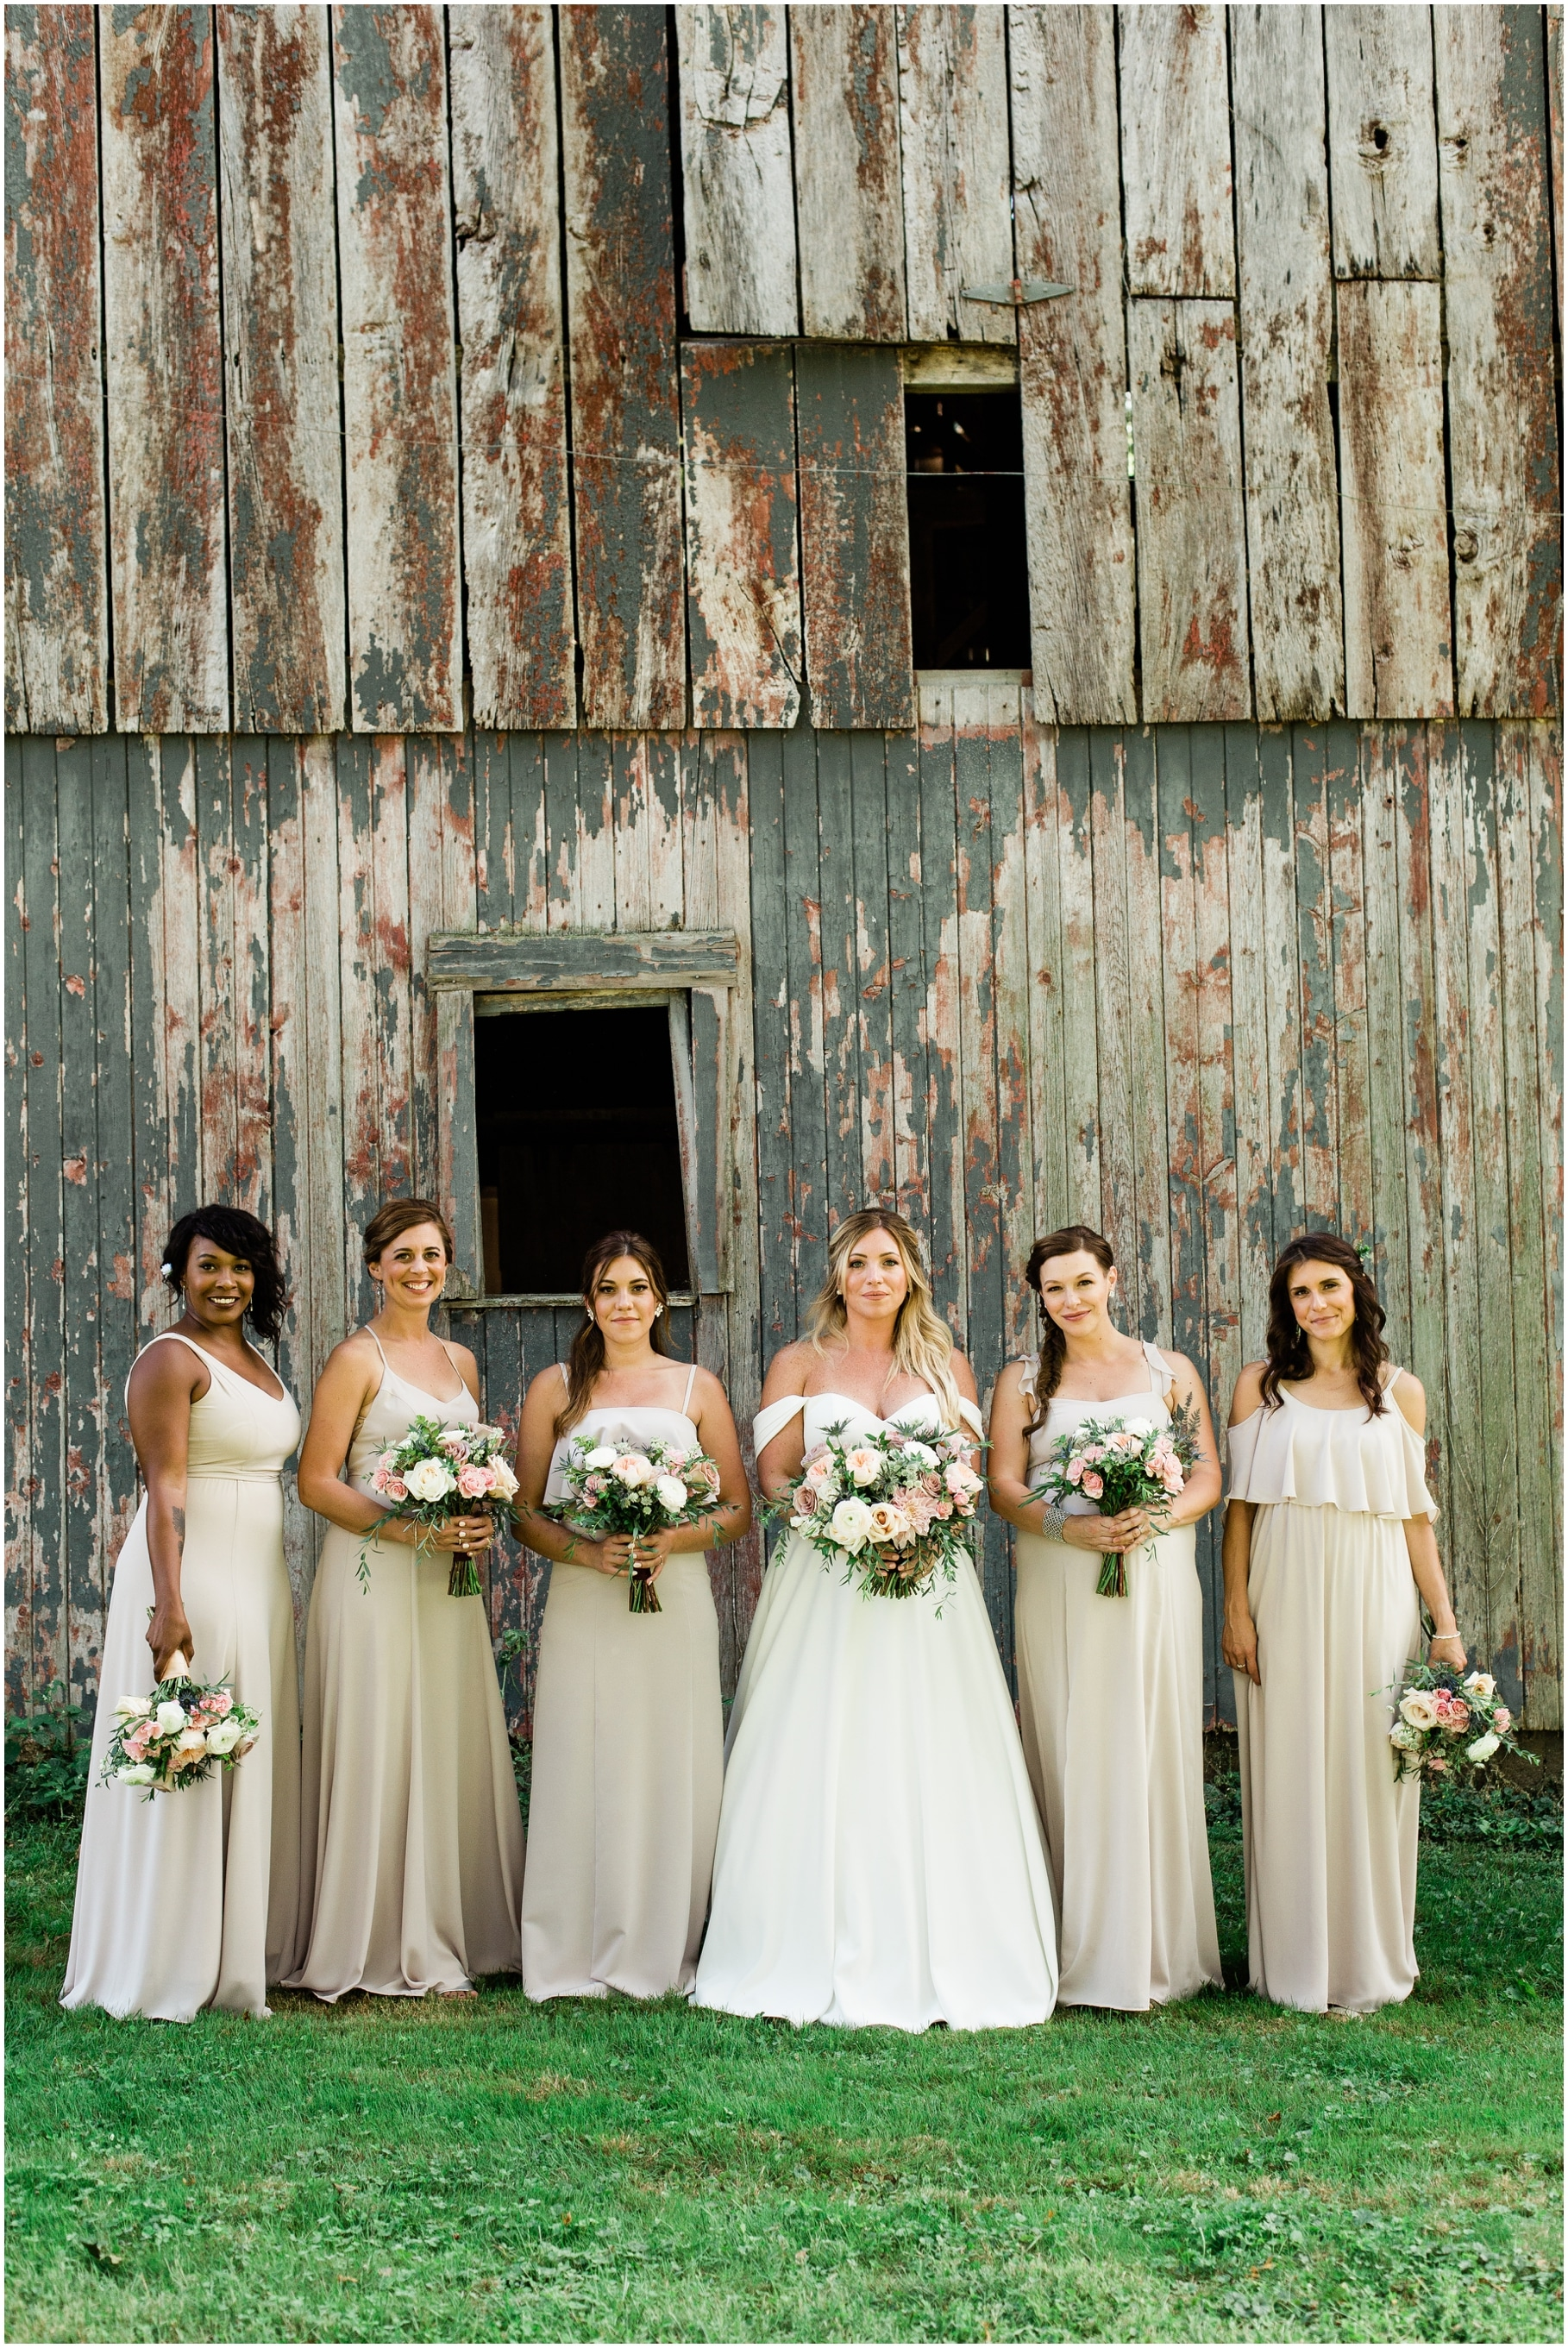 adam lowe photography, wedding, bride, groom, Wendy's Bridal,Sofyano Suits,Show Me Your Mumu,Made From Scratch, Lasting Impressions, outdoor wedding, style, stylish, columbus, ohio, midwest,